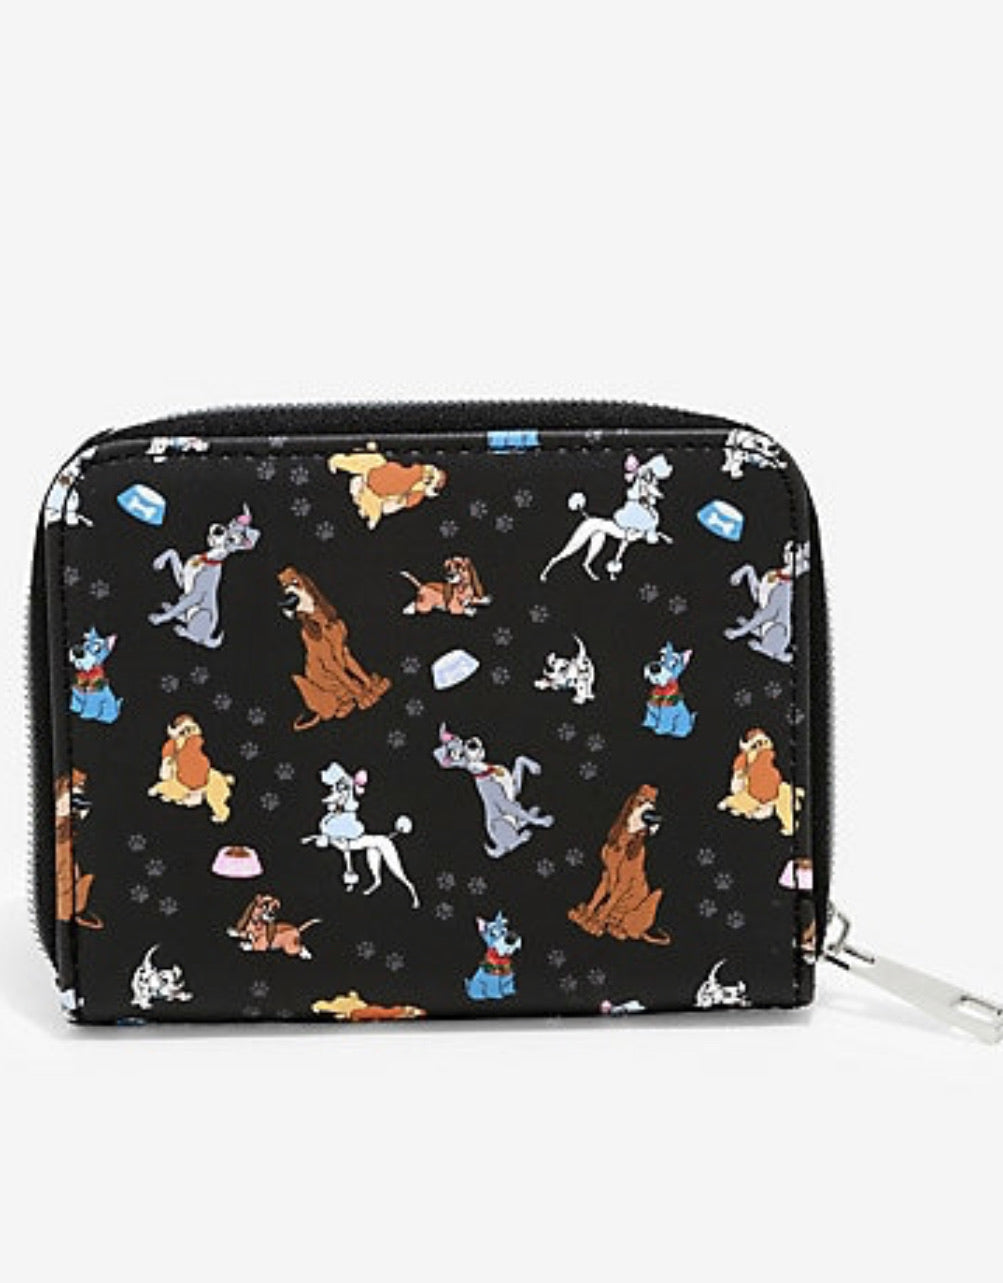 Cartera Perritos Disney